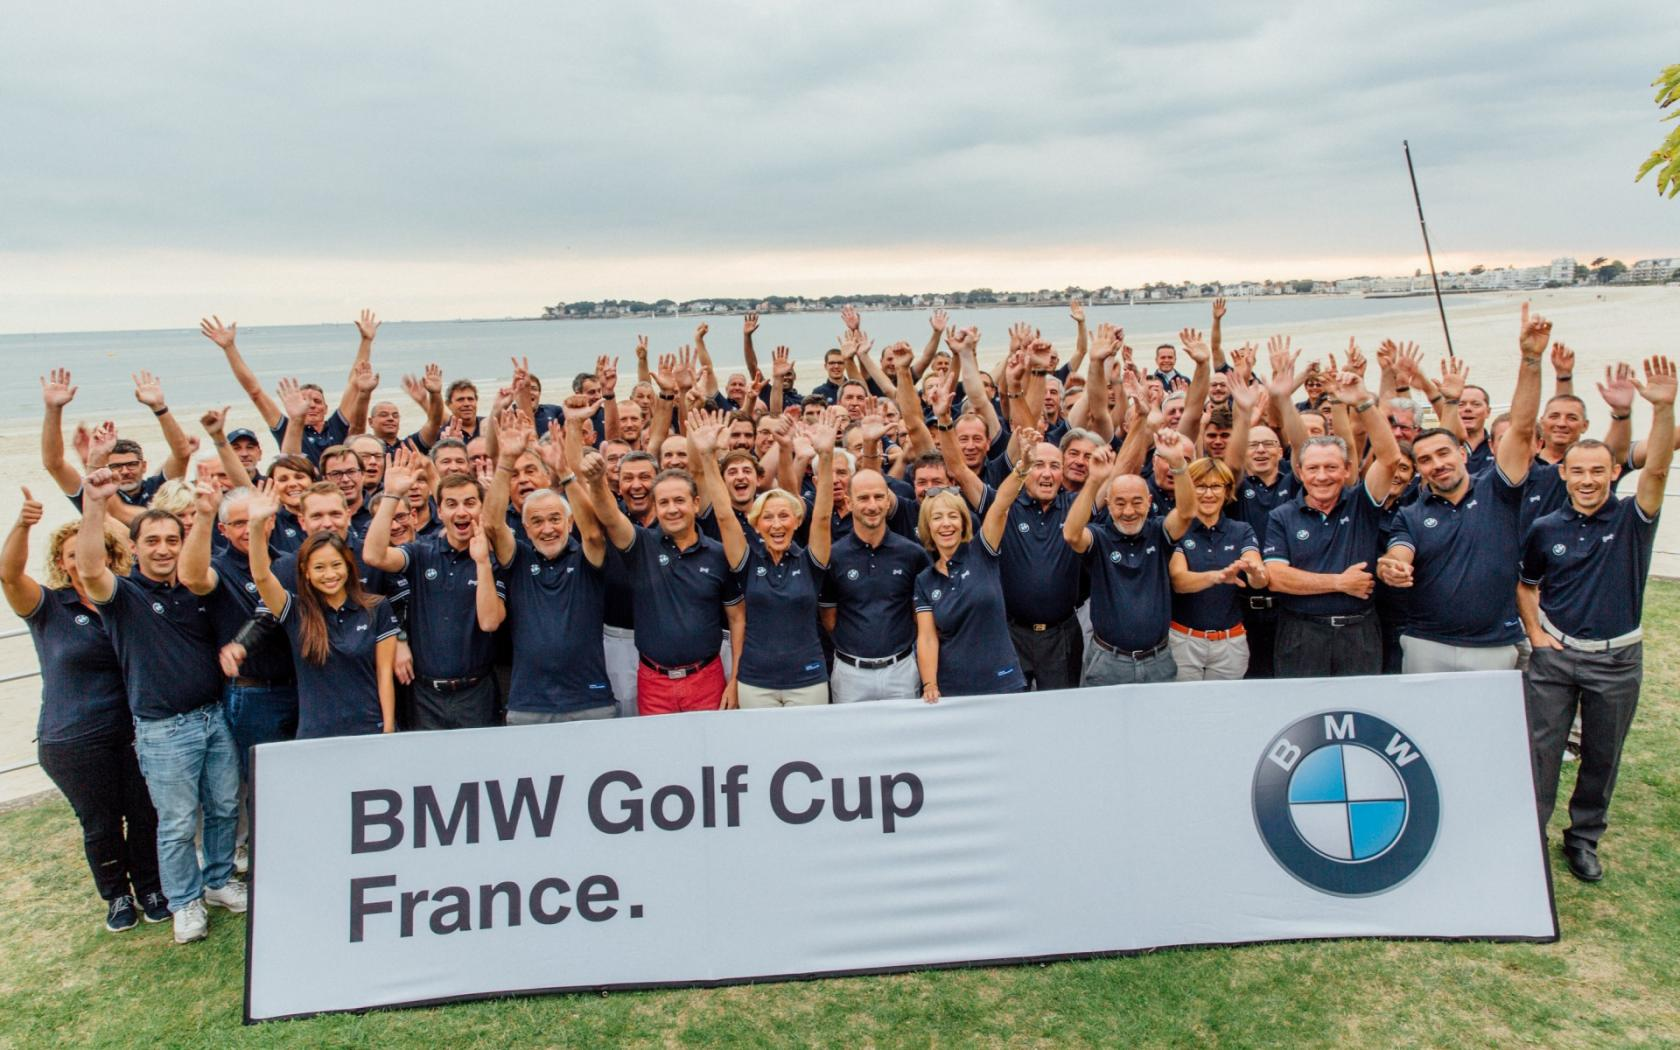 BMW-Golf-Cup-France.jpeg